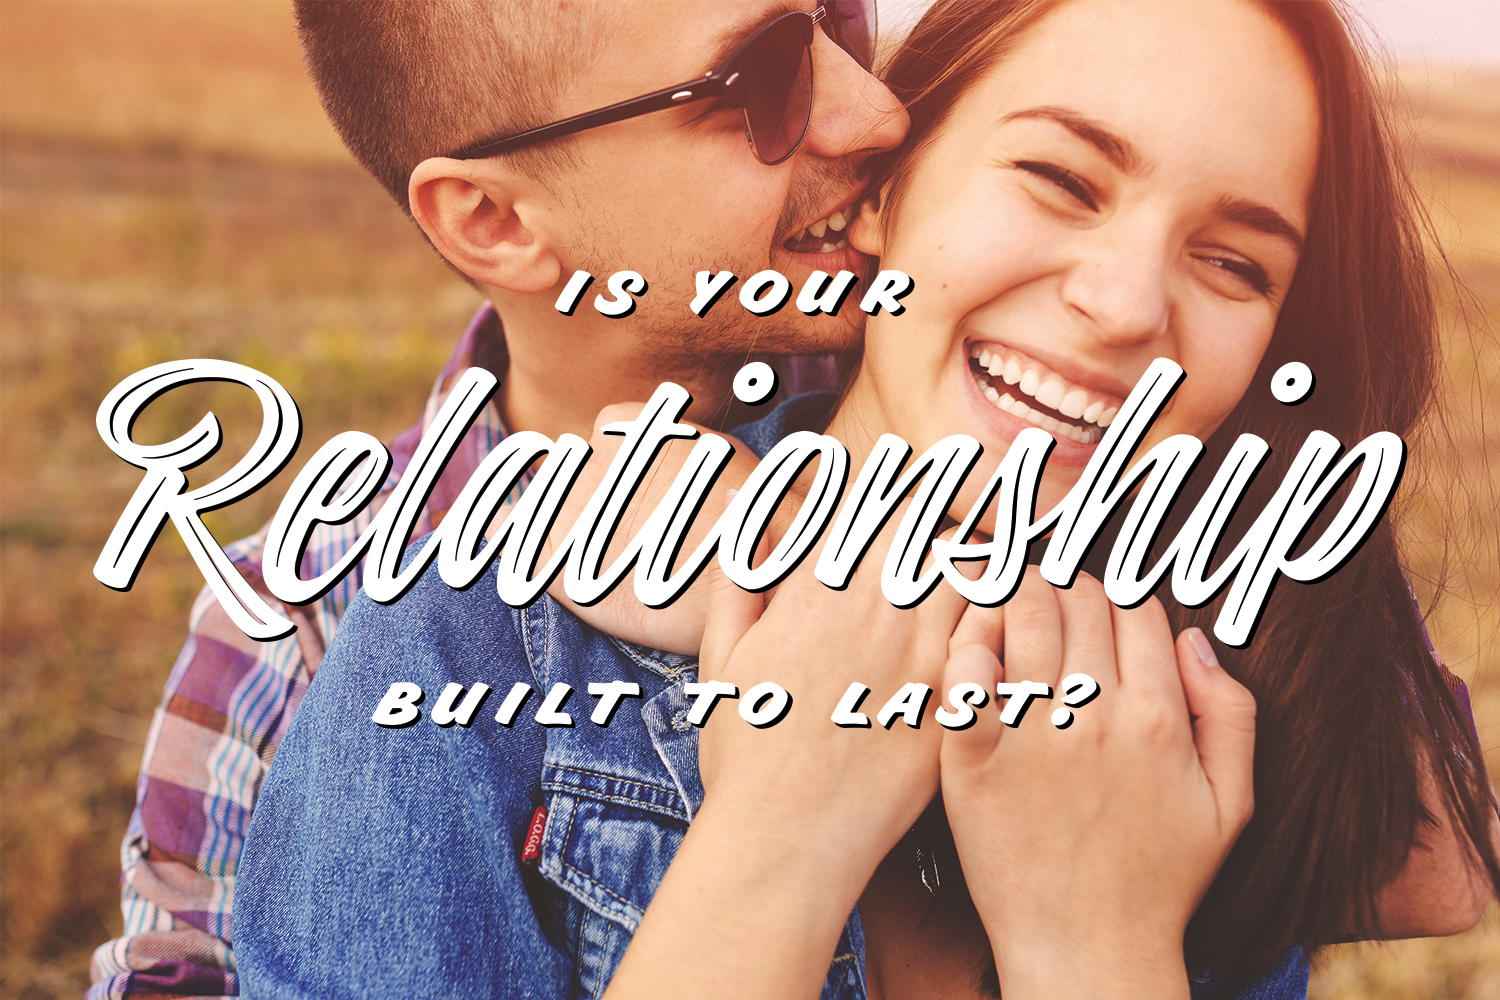 teenage love essay teenage love problems relationships com teenage  teenage love problems relationships com 9 ways to ensure your relationship is built to last teenage love essay